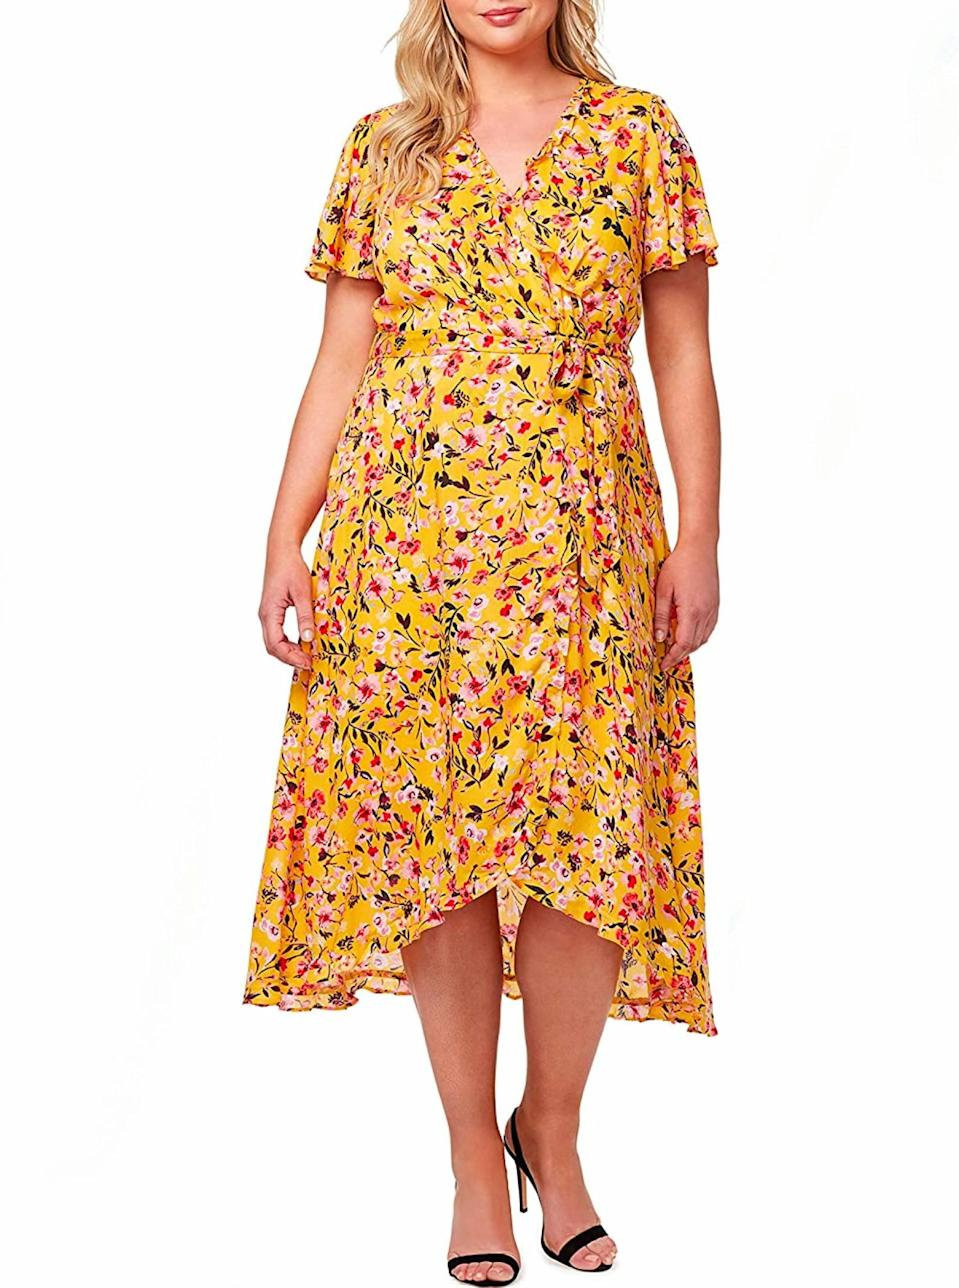 """POV: You're dancing under the moonlight and """"Yellow"""" by Coldplay comes on. $53, Amazon. <a href=""""https://www.amazon.com/Jessica-Simpson-Womens-Emberglow-Florals/dp/B08PNRCBDW/ref="""" rel=""""nofollow noopener"""" target=""""_blank"""" data-ylk=""""slk:Get it now!"""" class=""""link rapid-noclick-resp"""">Get it now!</a>"""